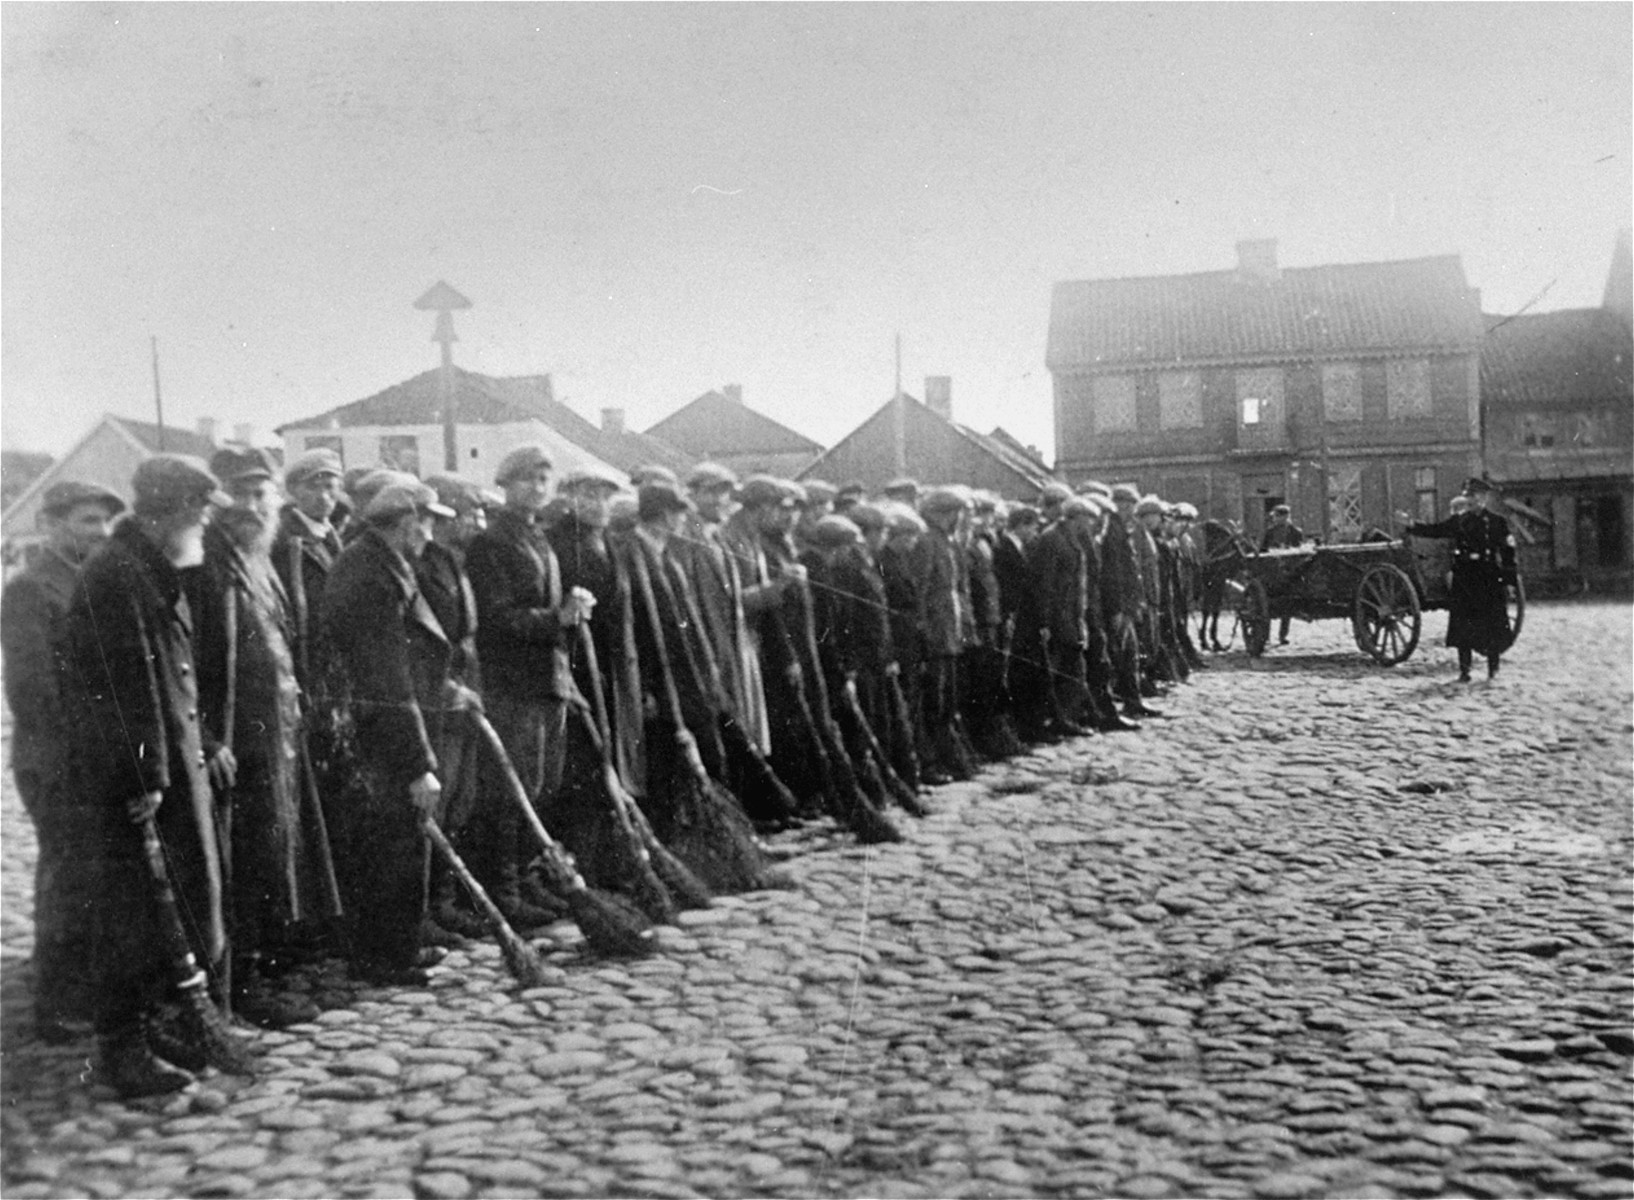 Jewish men are lined-up with brooms in the town square of Raciaz.